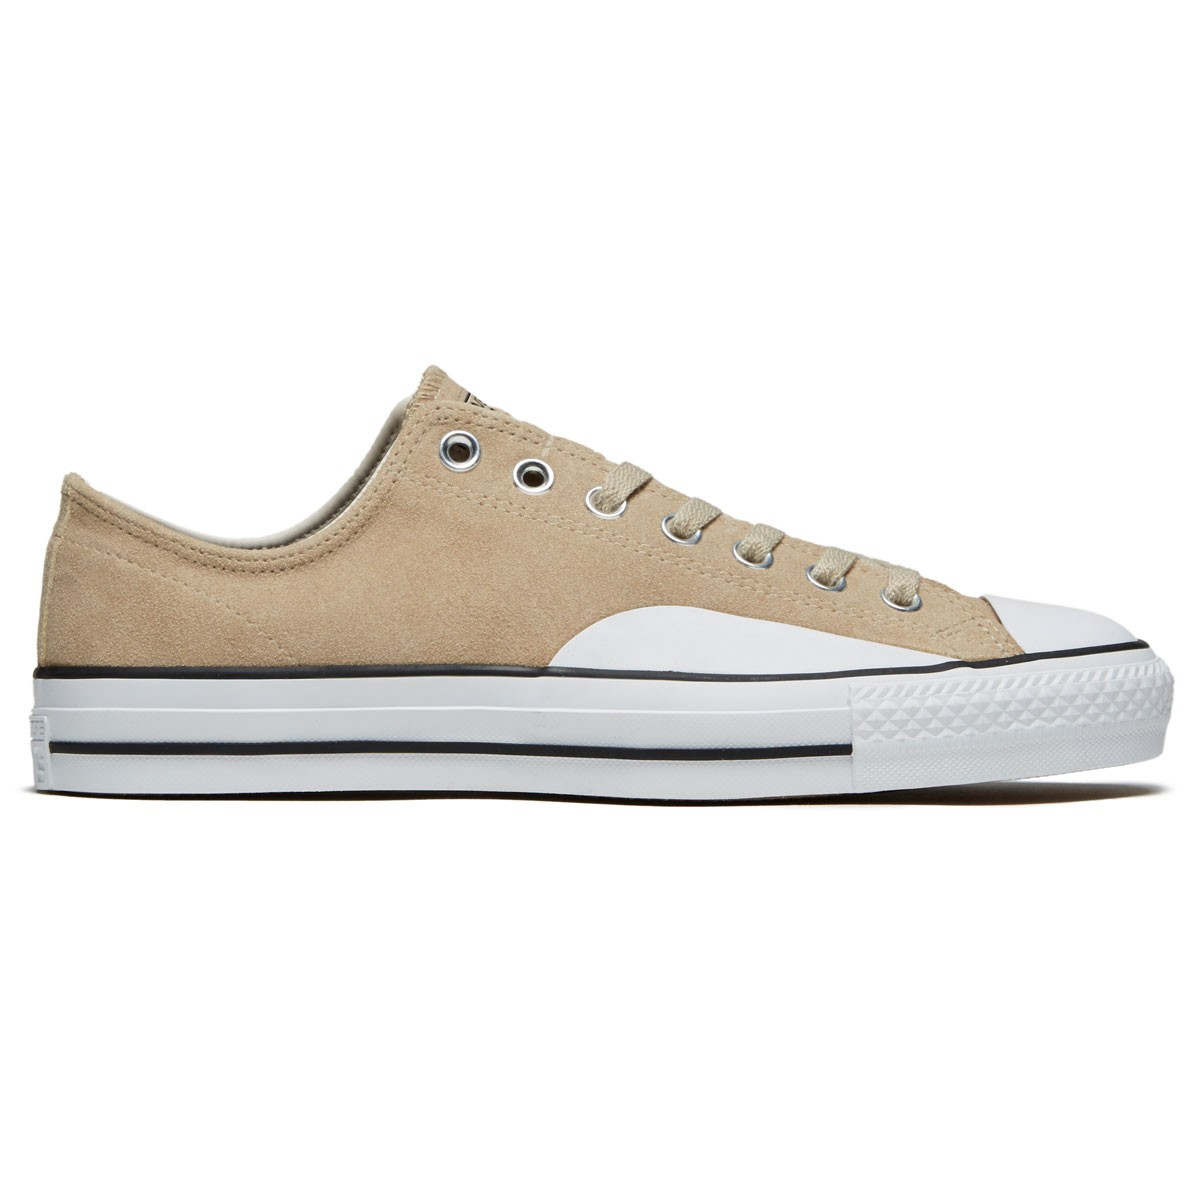 9fe267780a3b Converse CTAS Pro Low Top Shoes - Vintage Khaki Driftwood Black - 8.0